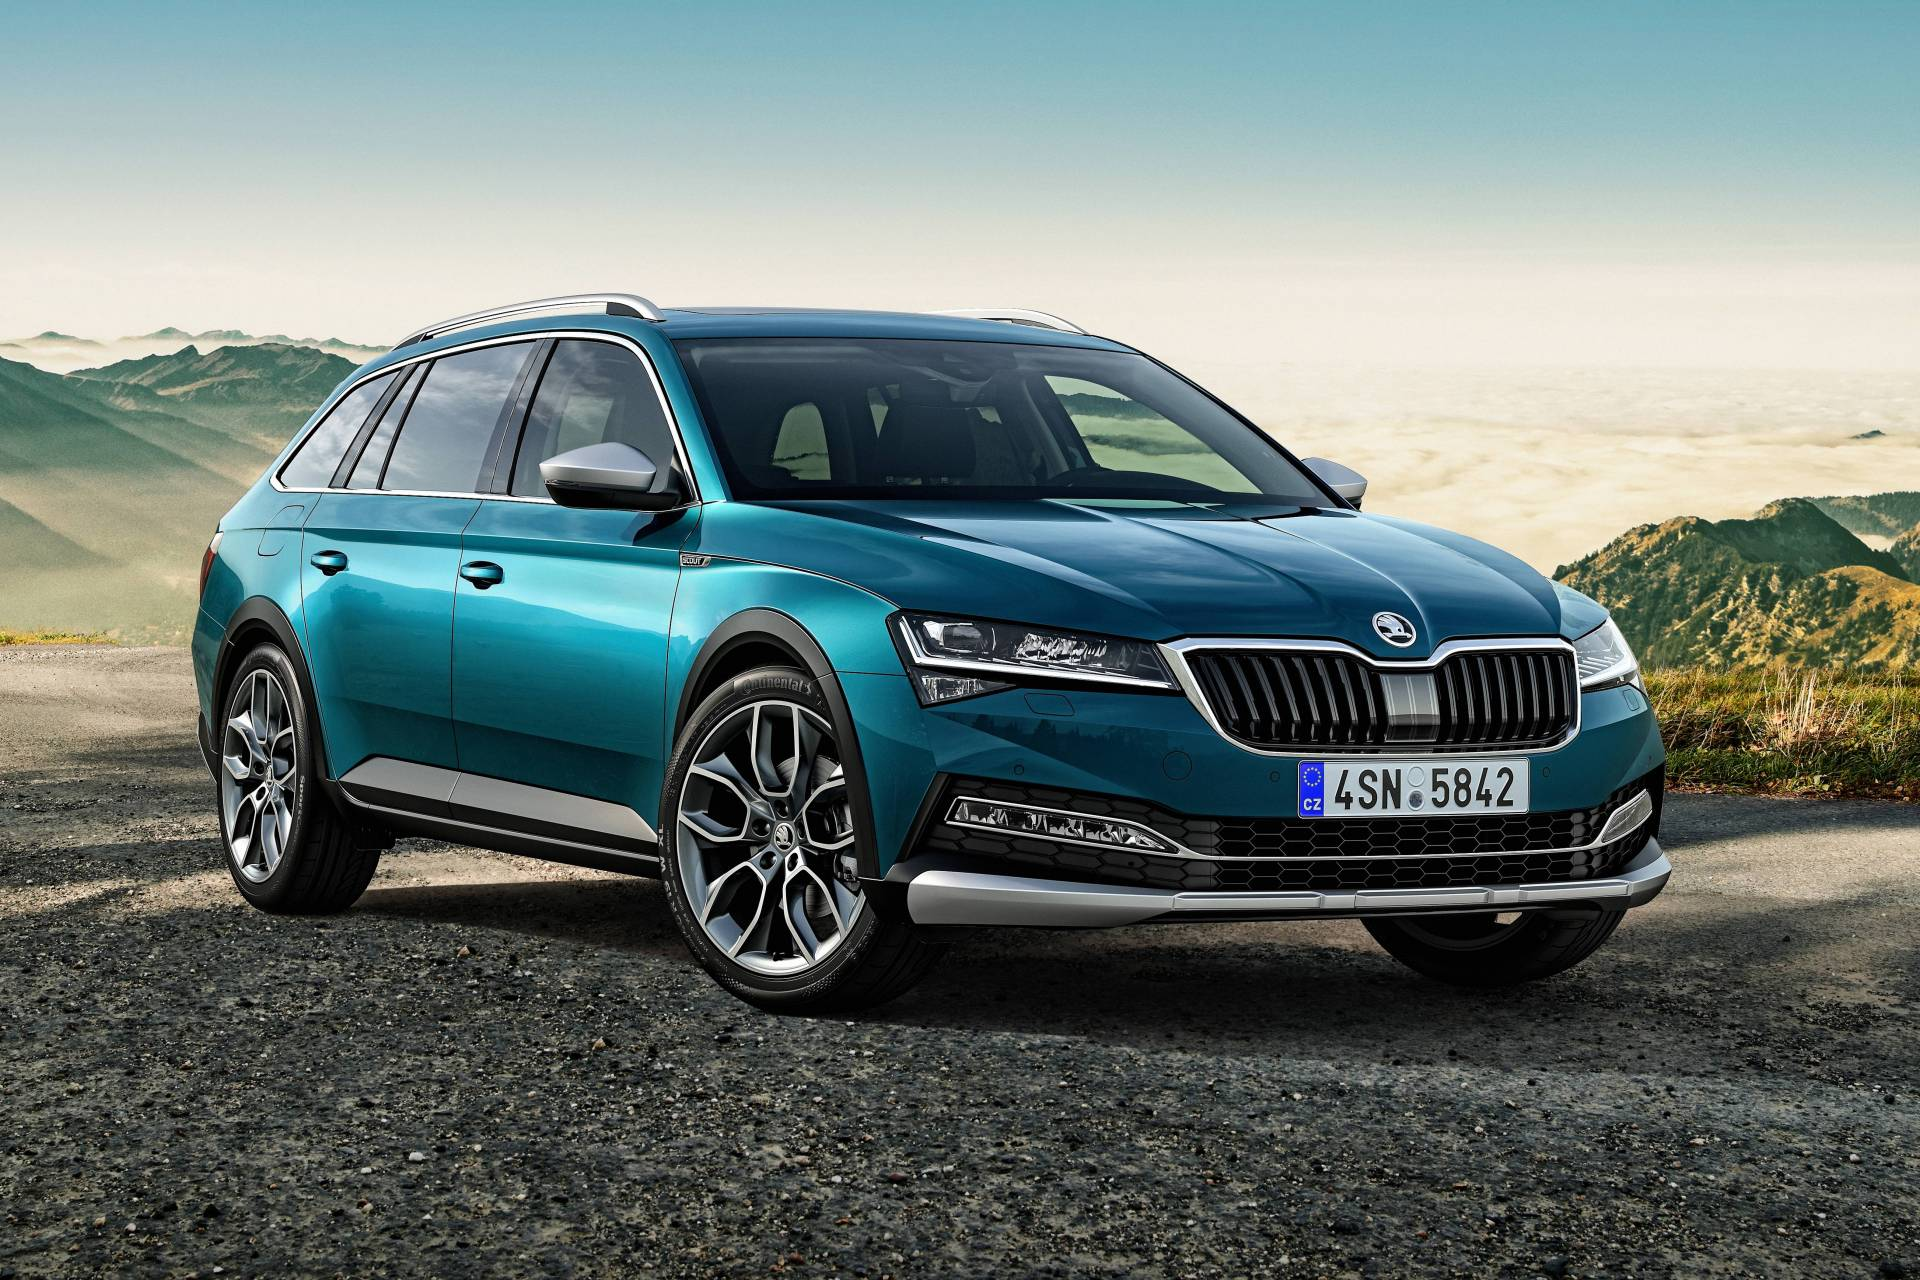 There's a new Skoda Superb, and it's hybrid